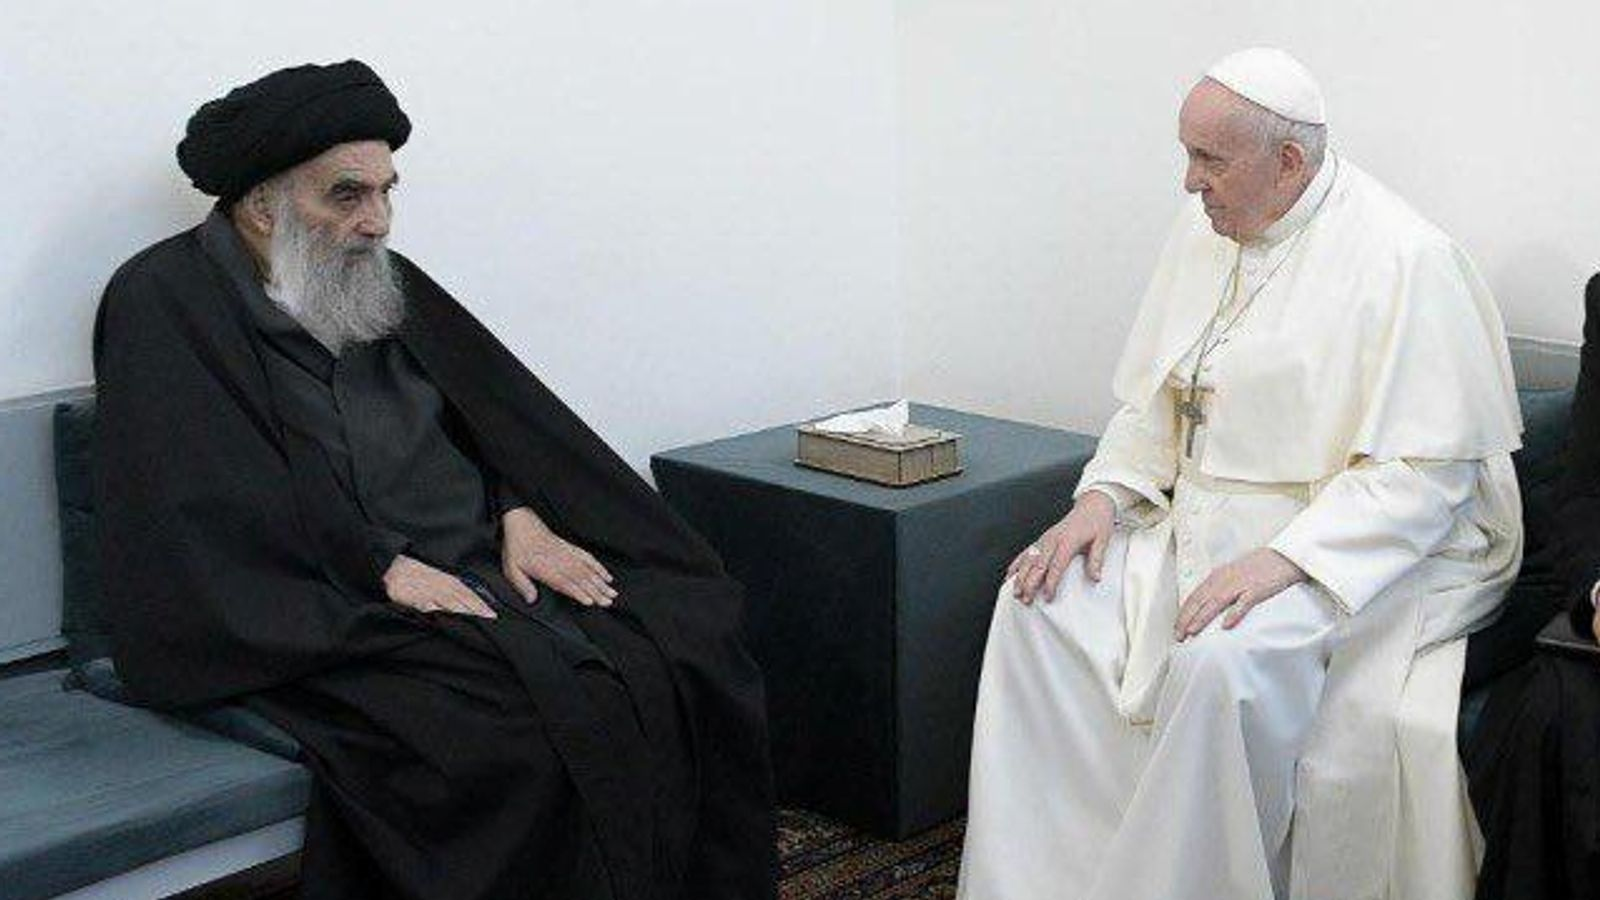 Pope Francis arrived at the home of Iraq's top Shi'ite Muslim cleric in southern Iraq on Saturday for the first ever such meeting between the leaders